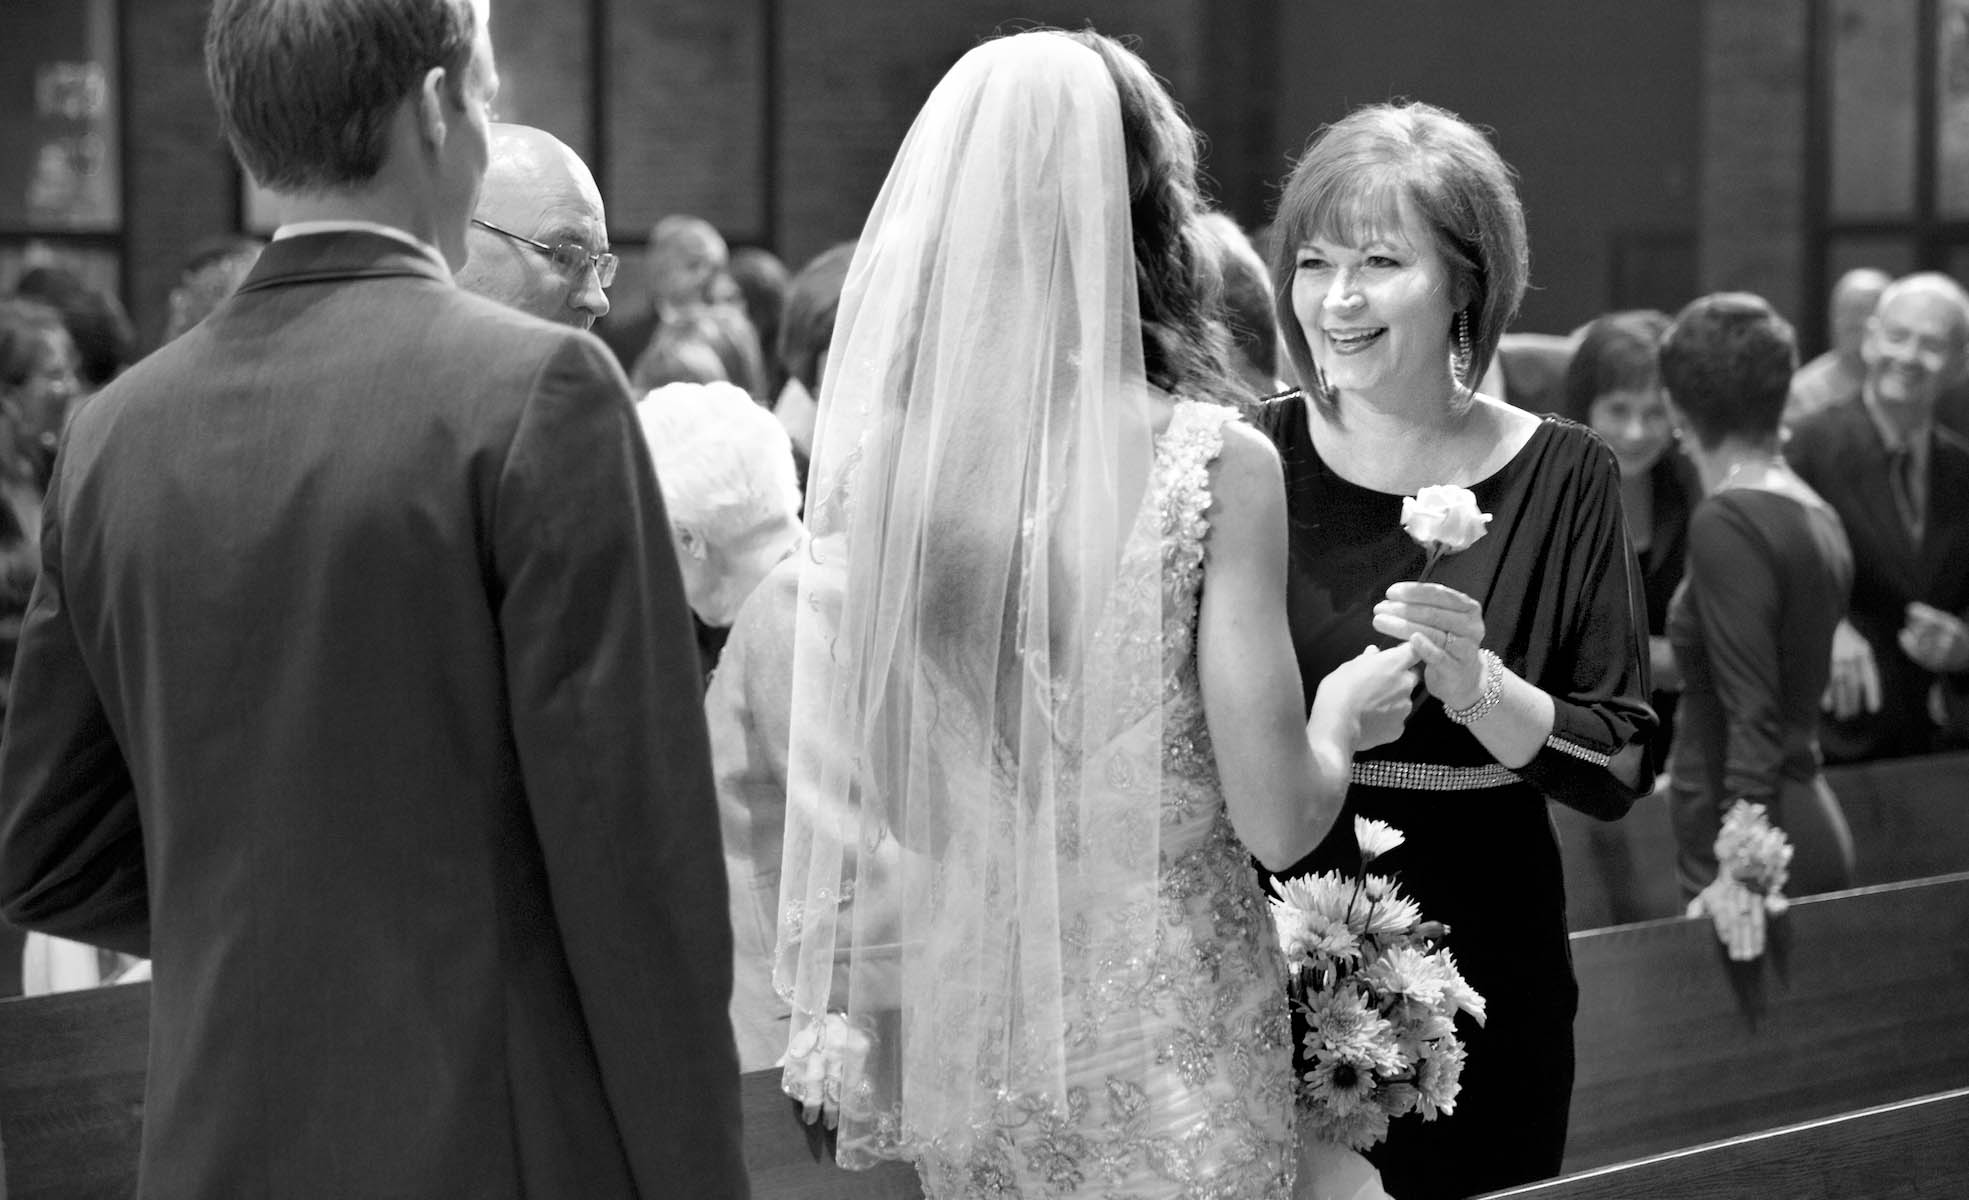 Alissa gives a flower to her mother during the sign of peace, ceremony at Our Saviour Catholic Church, Jacksonville. Wedding photography by Tiffany & Steve Warmowski.